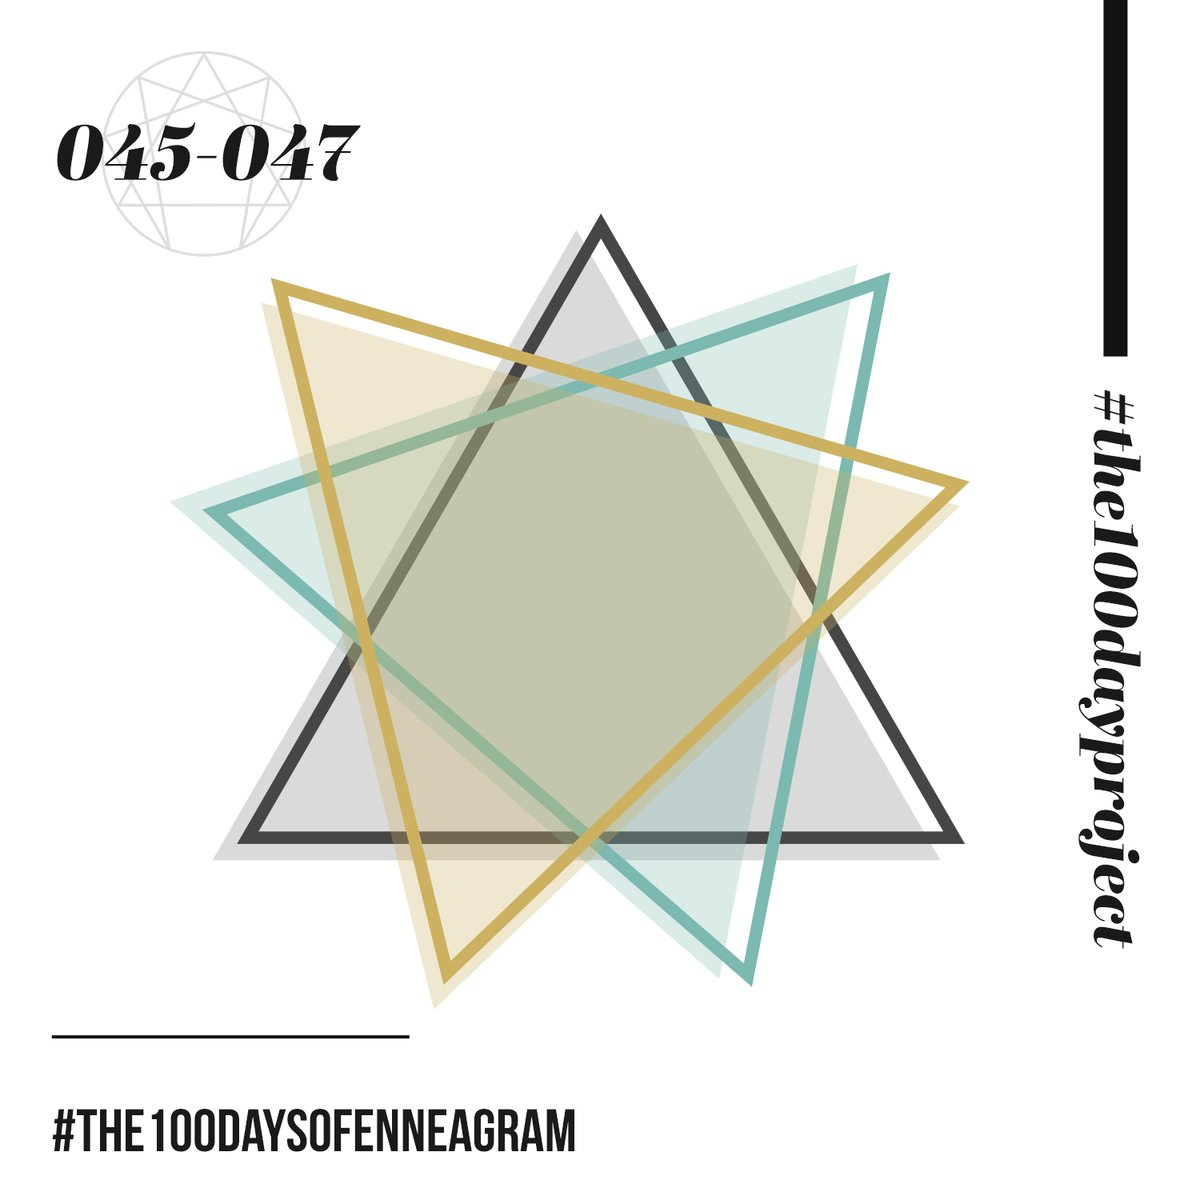 045/100 Harmony Triads & Object Relations Theory 046/100 The Relationalists/Rejection Types (2,5,8) 047/100 The Pragmatists/Attachment Types (3,6,9)  Listen at https://t.co/MBo795Vt8V. All caught up!  #the100dayproject #the100daysofEnneagram #enneagram https://t.co/gLAPYYNkcs